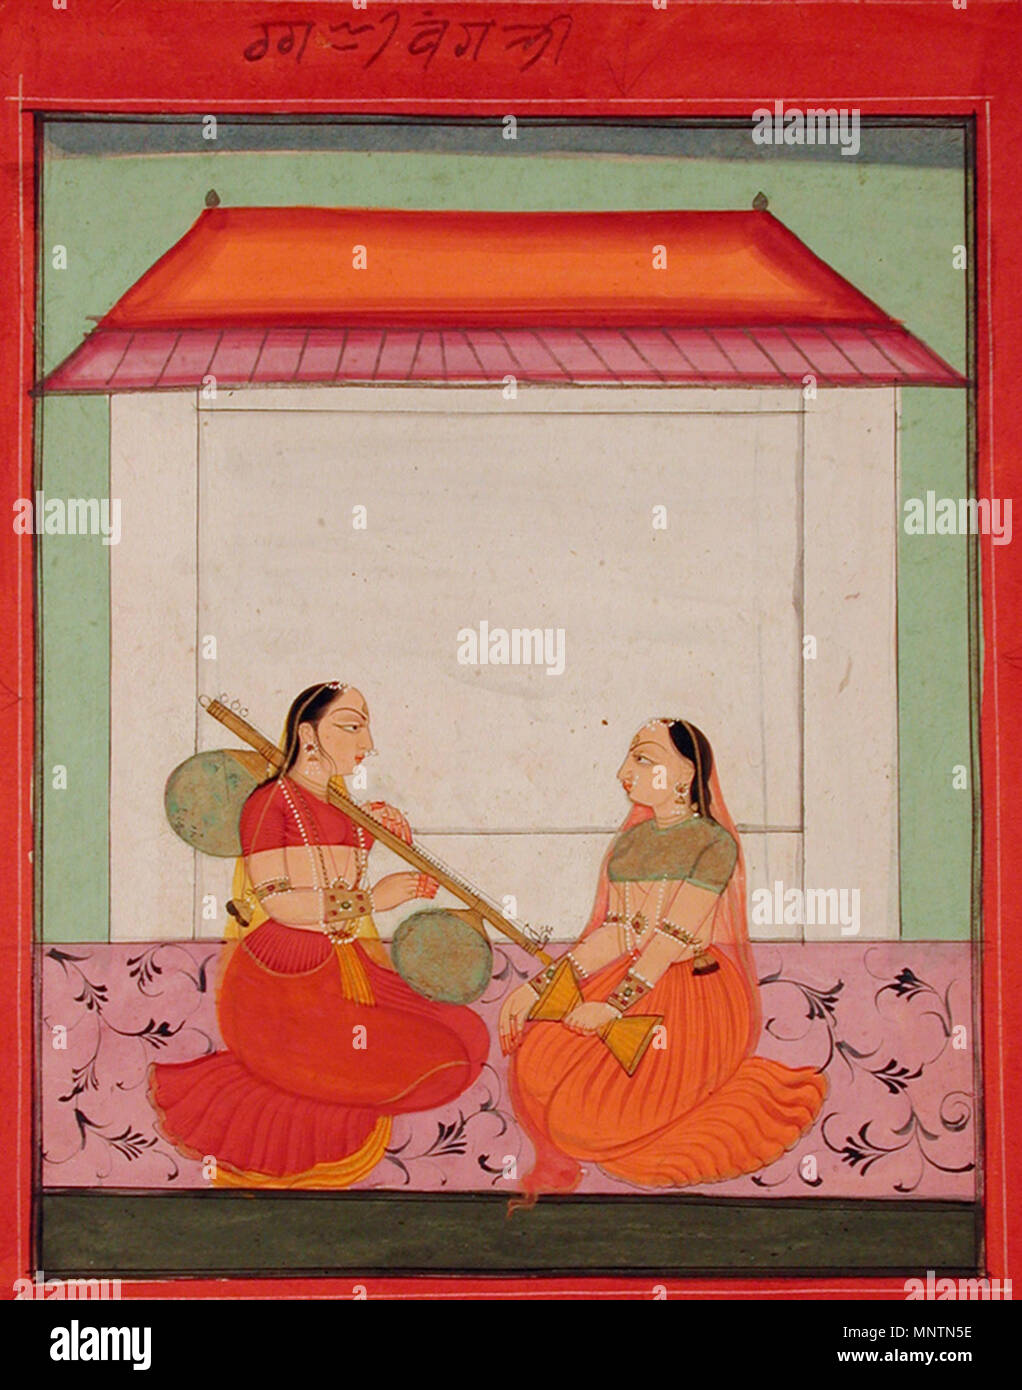 . English: Series Title: Ragamala Suite Name: Ragamala Creation Date: ca. 1730 Display Dimensions: 8 21/32 in. x 7 7/32 in. (22 cm x 18.3 cm) Credit Line: Edwin Binney 3rd Collection Accession Number: 1990.1081 Collection: <a href='http://www.sdmart.org/art/our-collection/asian-art' rel='nofollow'>The San Diego Museum of Art</a> . 6 September 2011, 14:33:10. English: thesandiegomuseumofartcollection 1039 Ragini Bangali (6124581557) - Stock Image